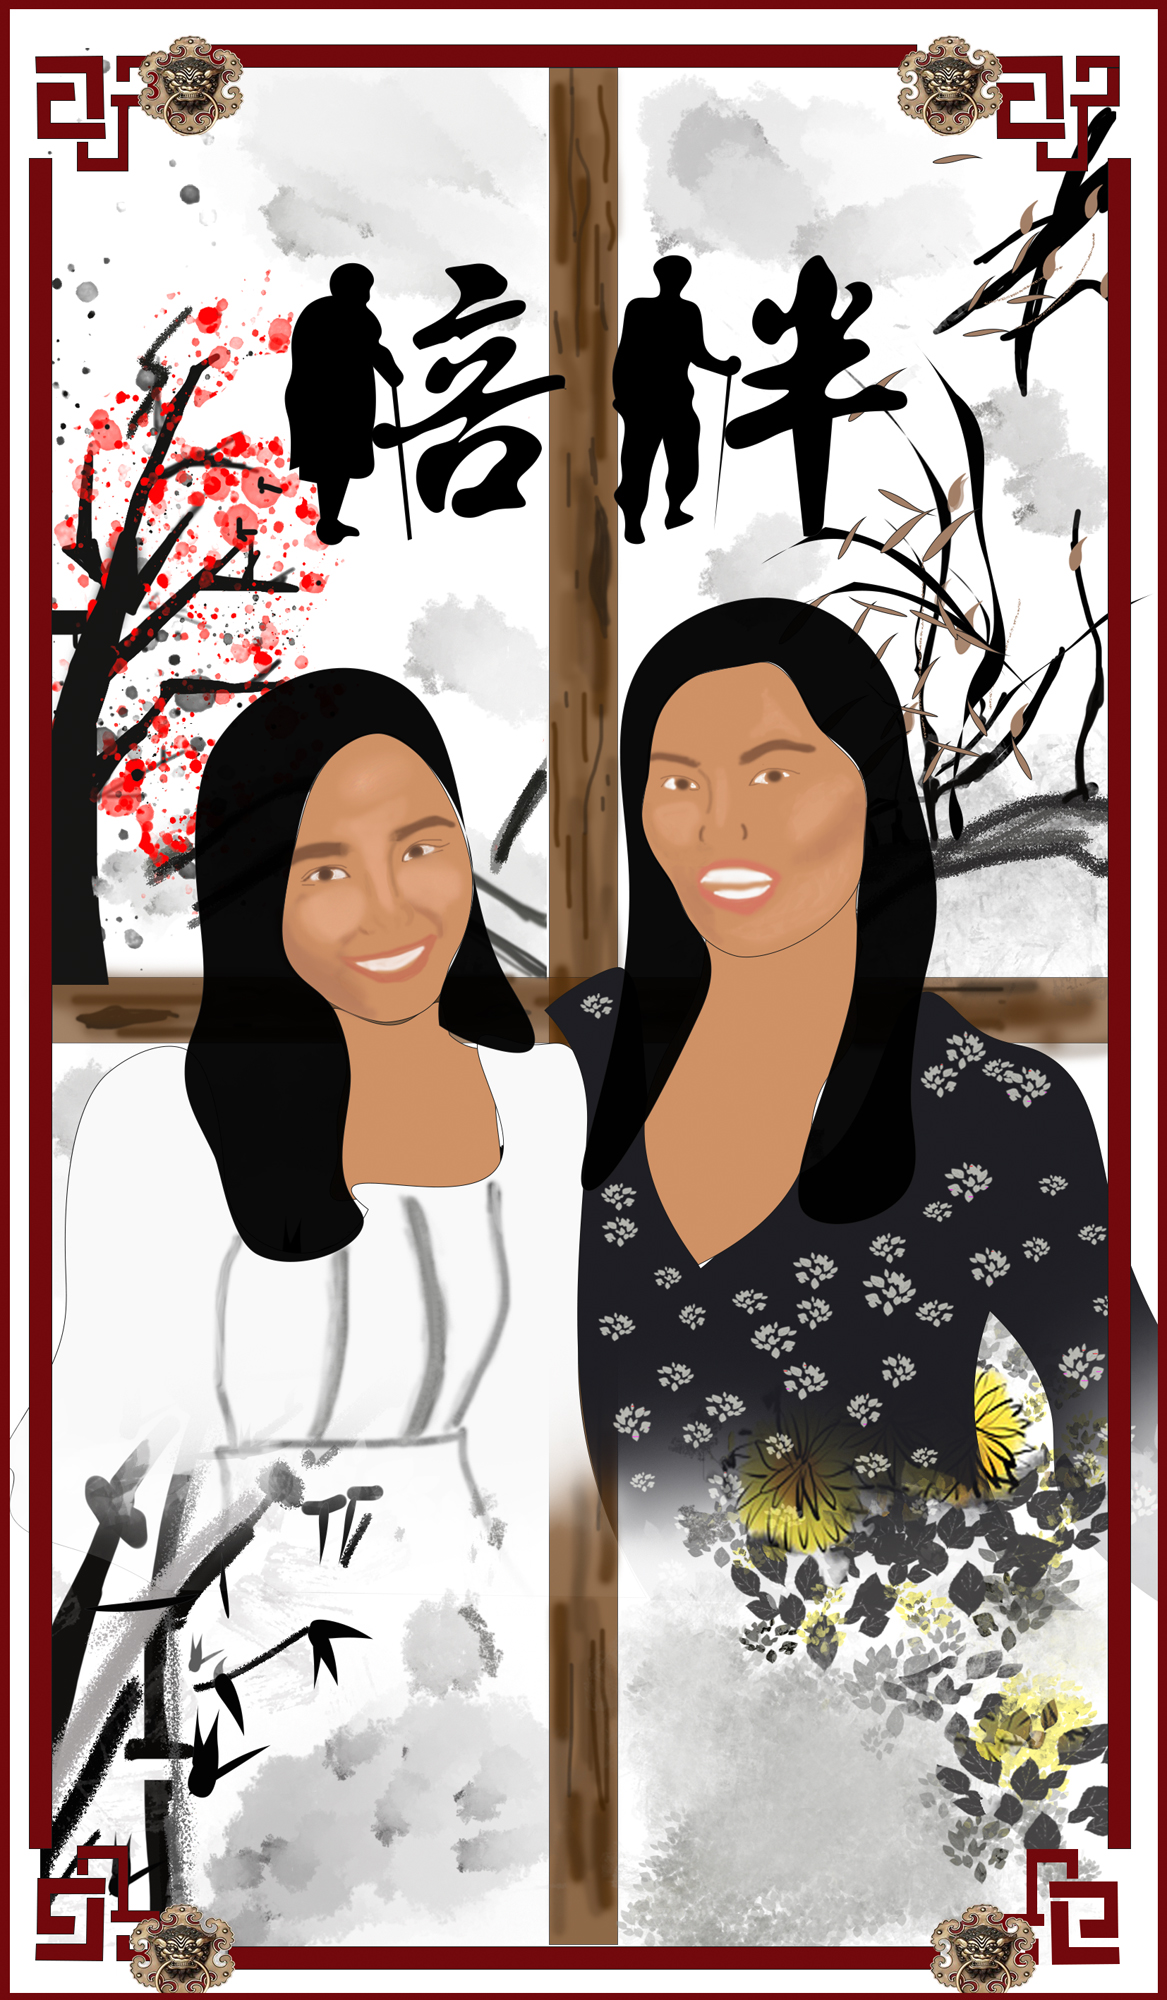 Two women, one in a black shirt with white accents and one in a white shirt with black accents, face the viewer lookng out of a window pane. Chinese characters in red are above their head